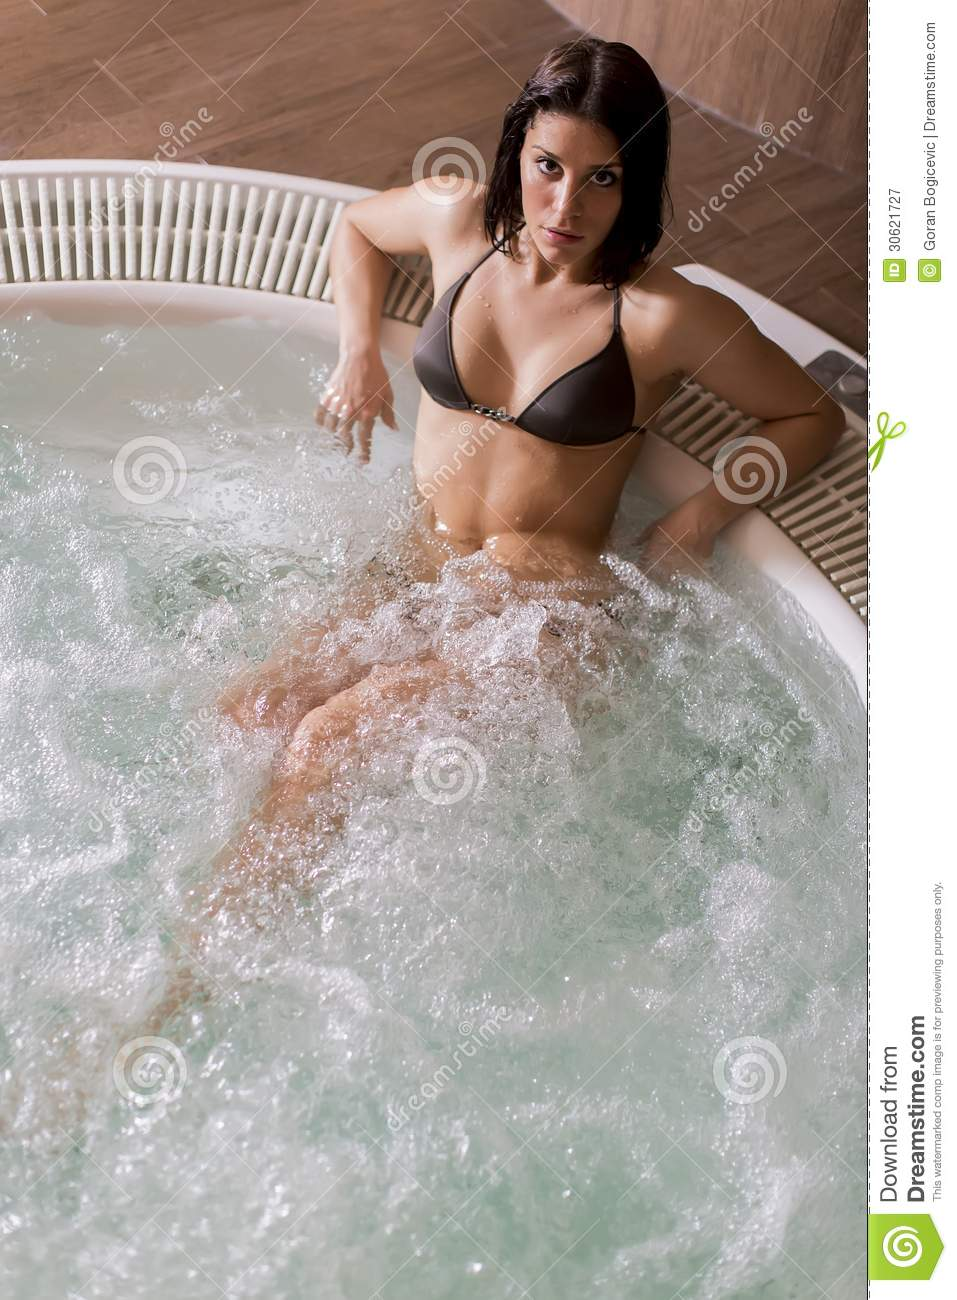 Young Woman In The Hot Tub Stock Image Image Of Bathroom